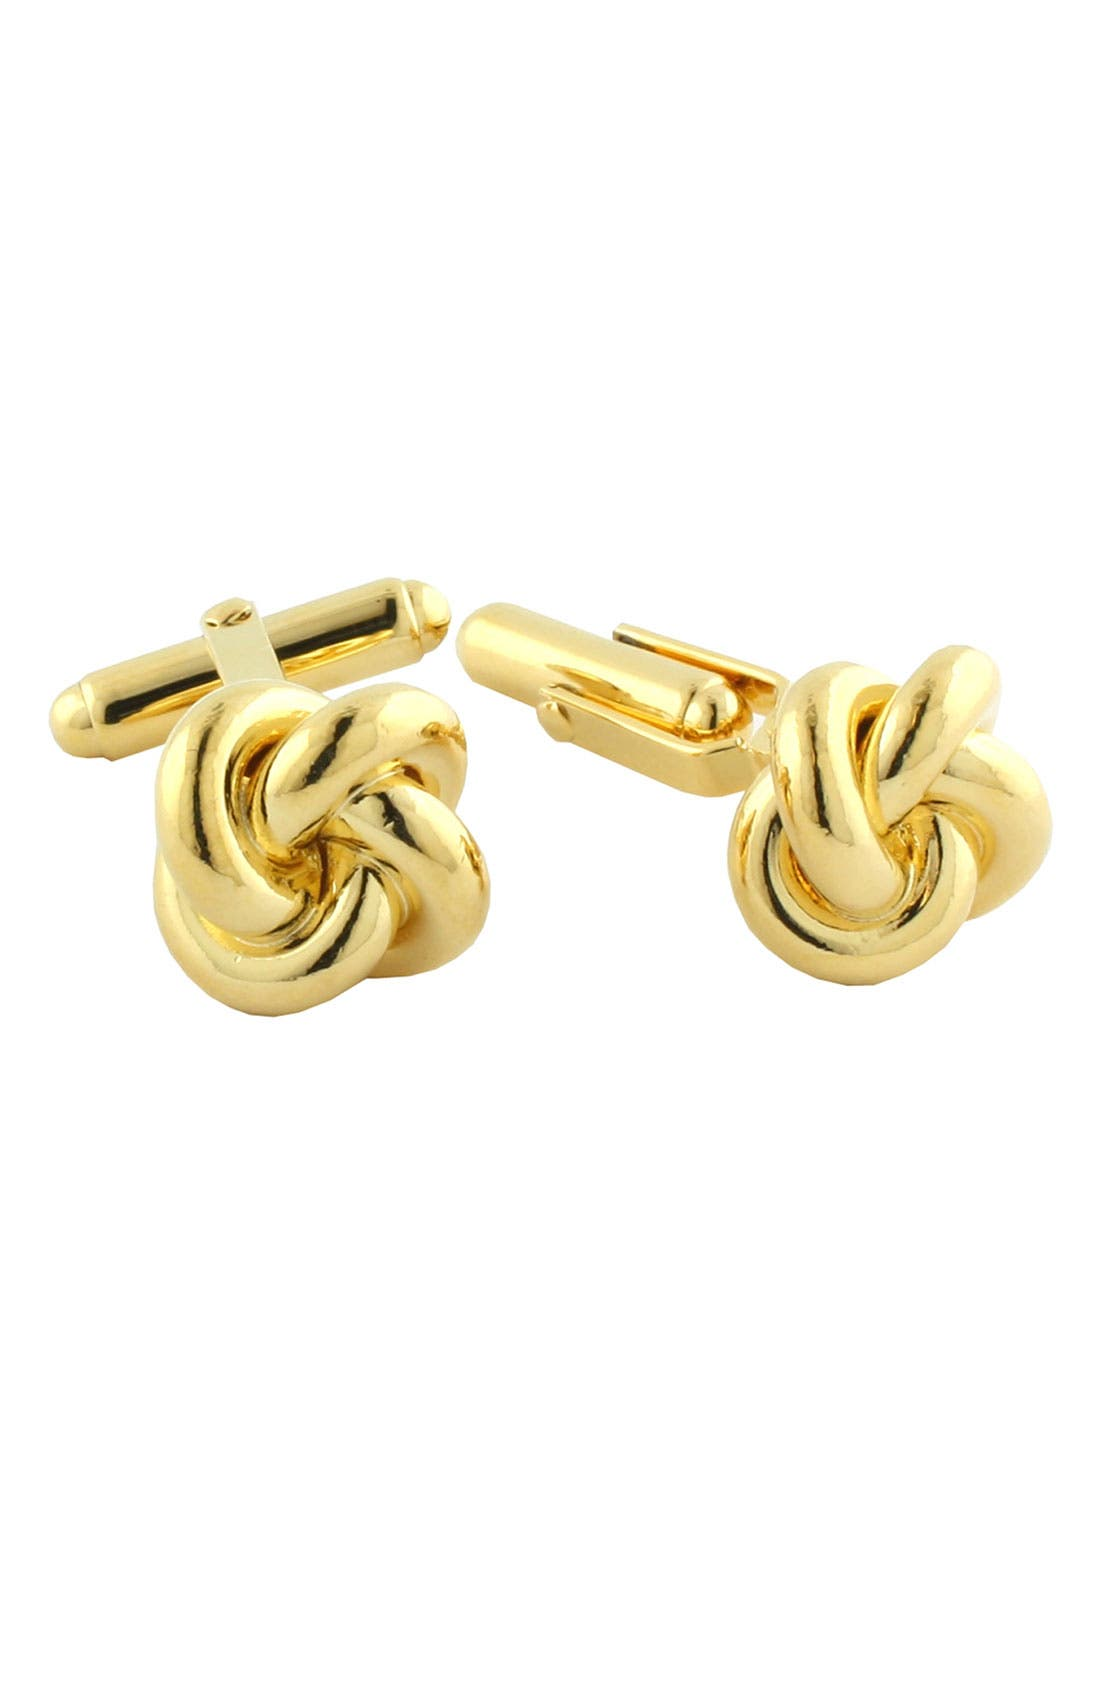 Main Image - David Donahue Knot Cuff Links